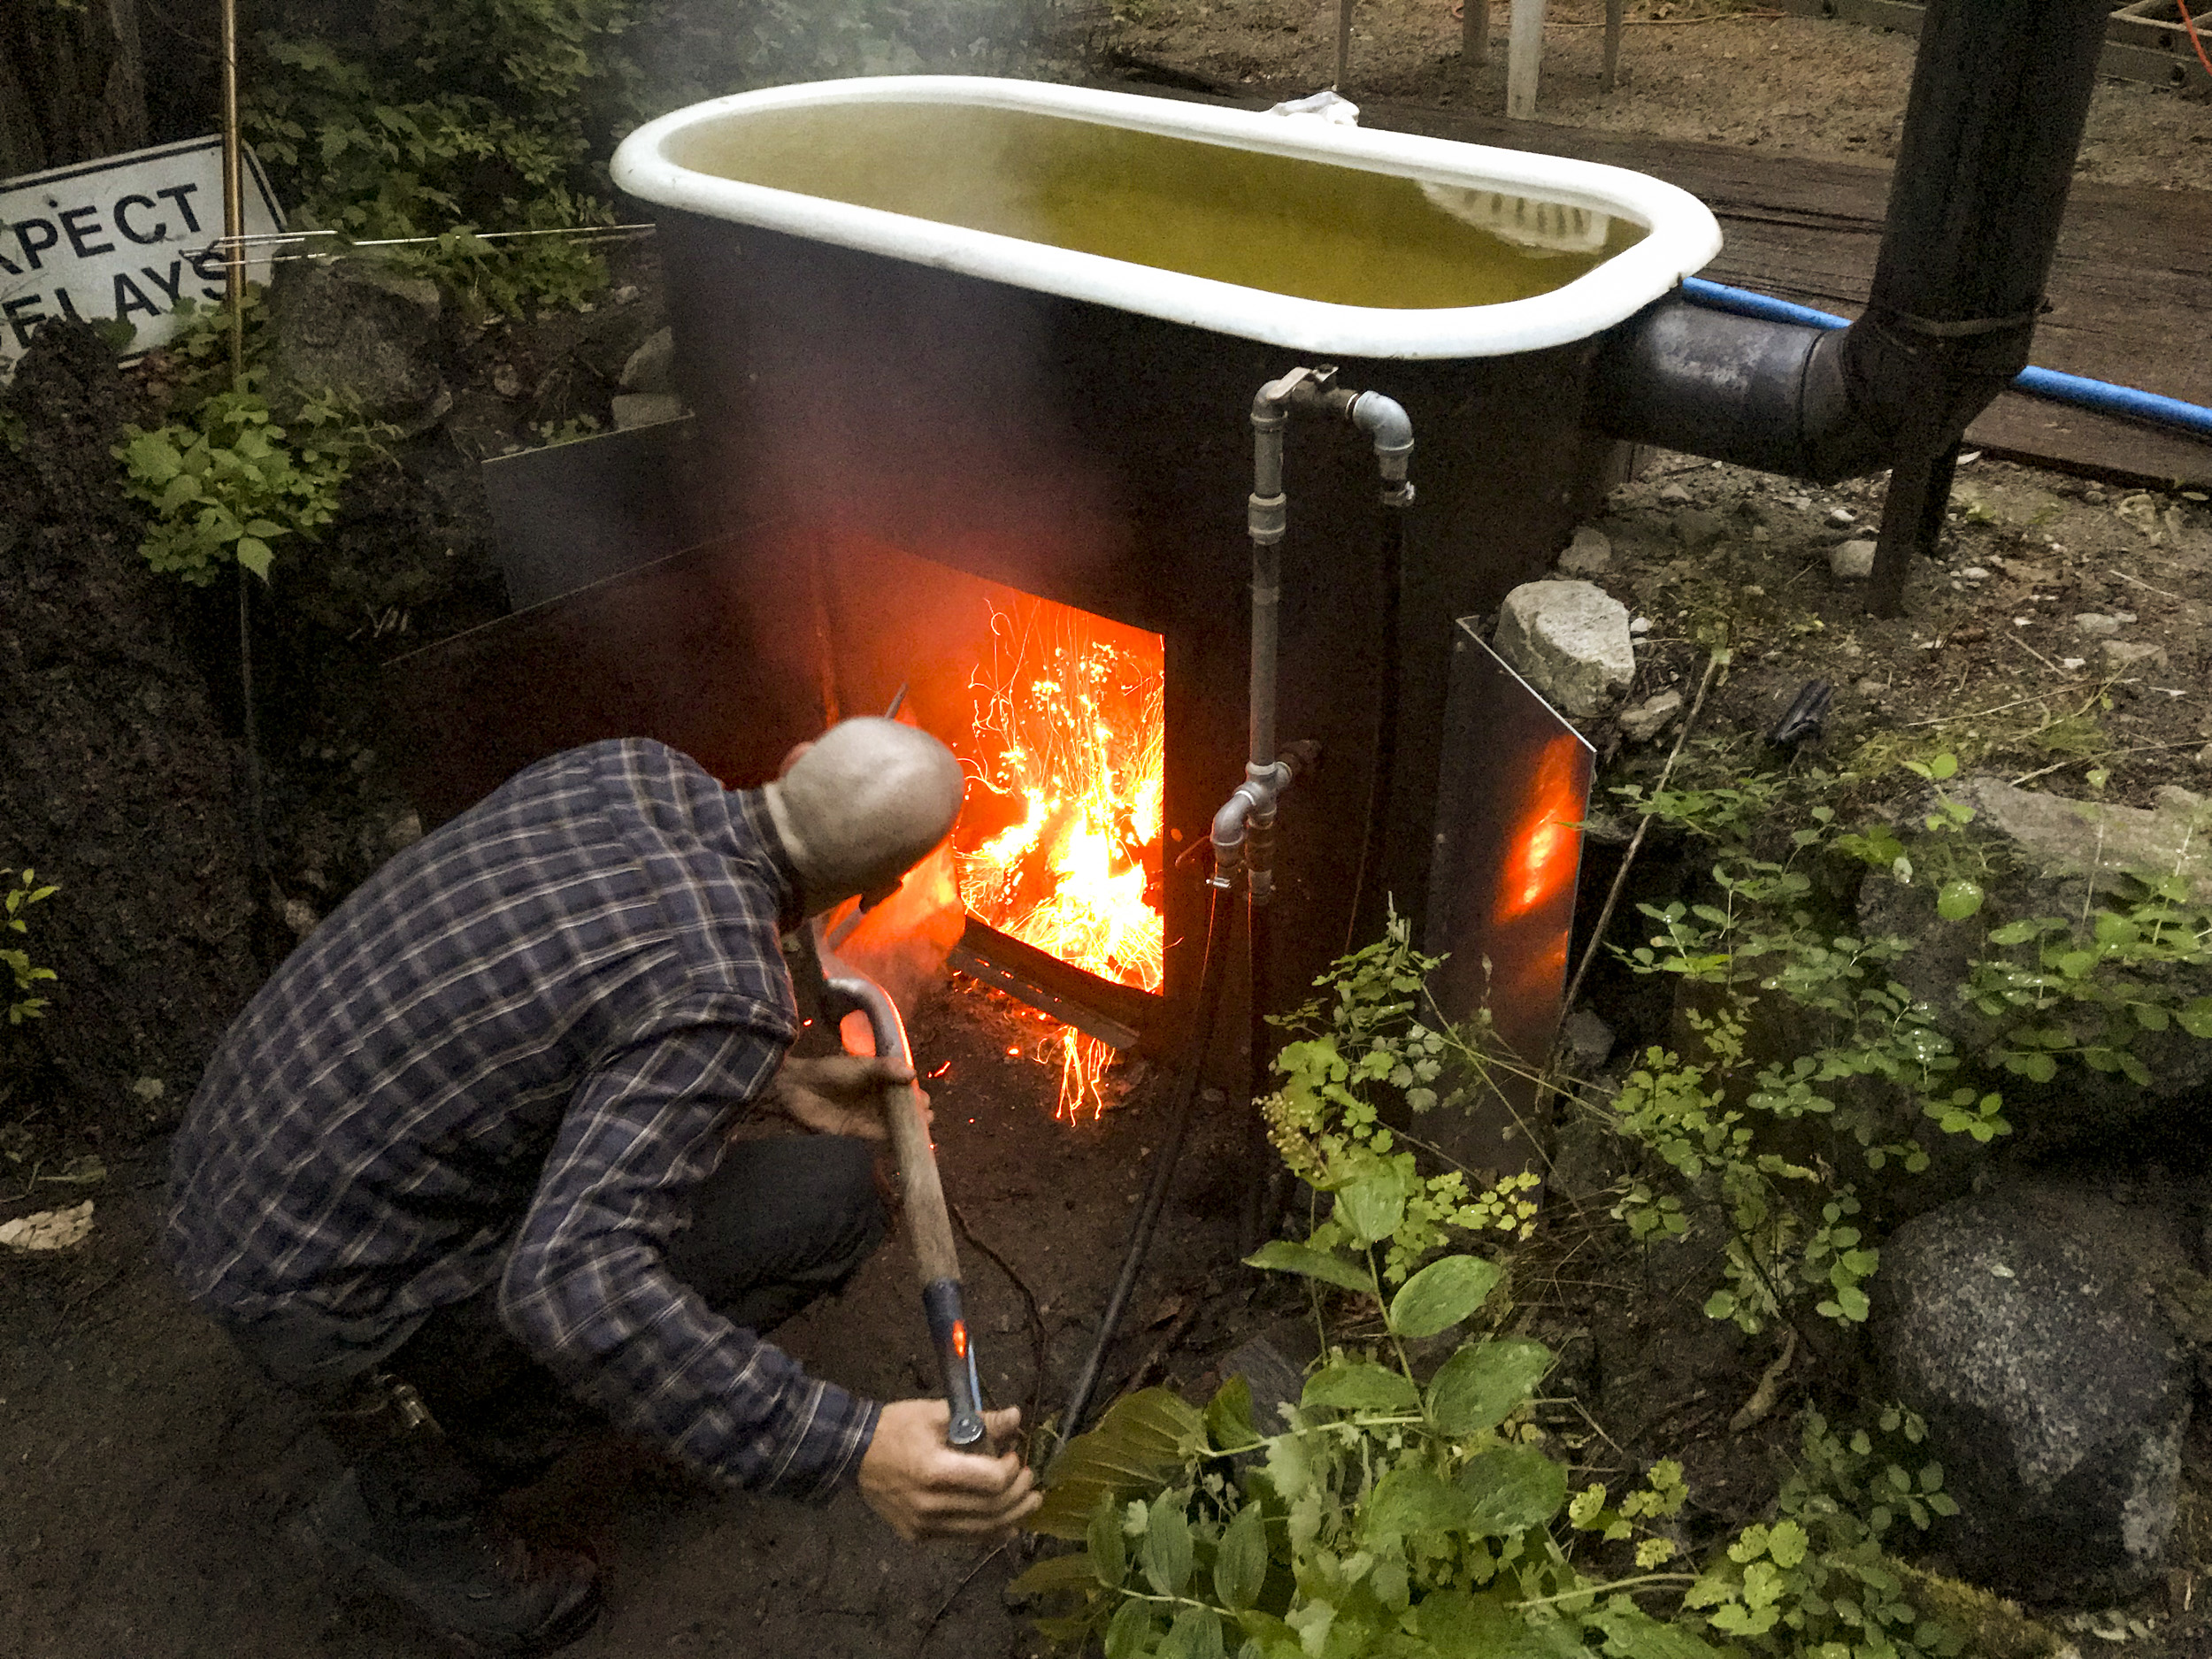 Jeff Radomsky heating up the wood-fired hot tub in advance of a soak. The tub, which is fed by a siphon line from the creek, provides hot water for the outdoor shower.